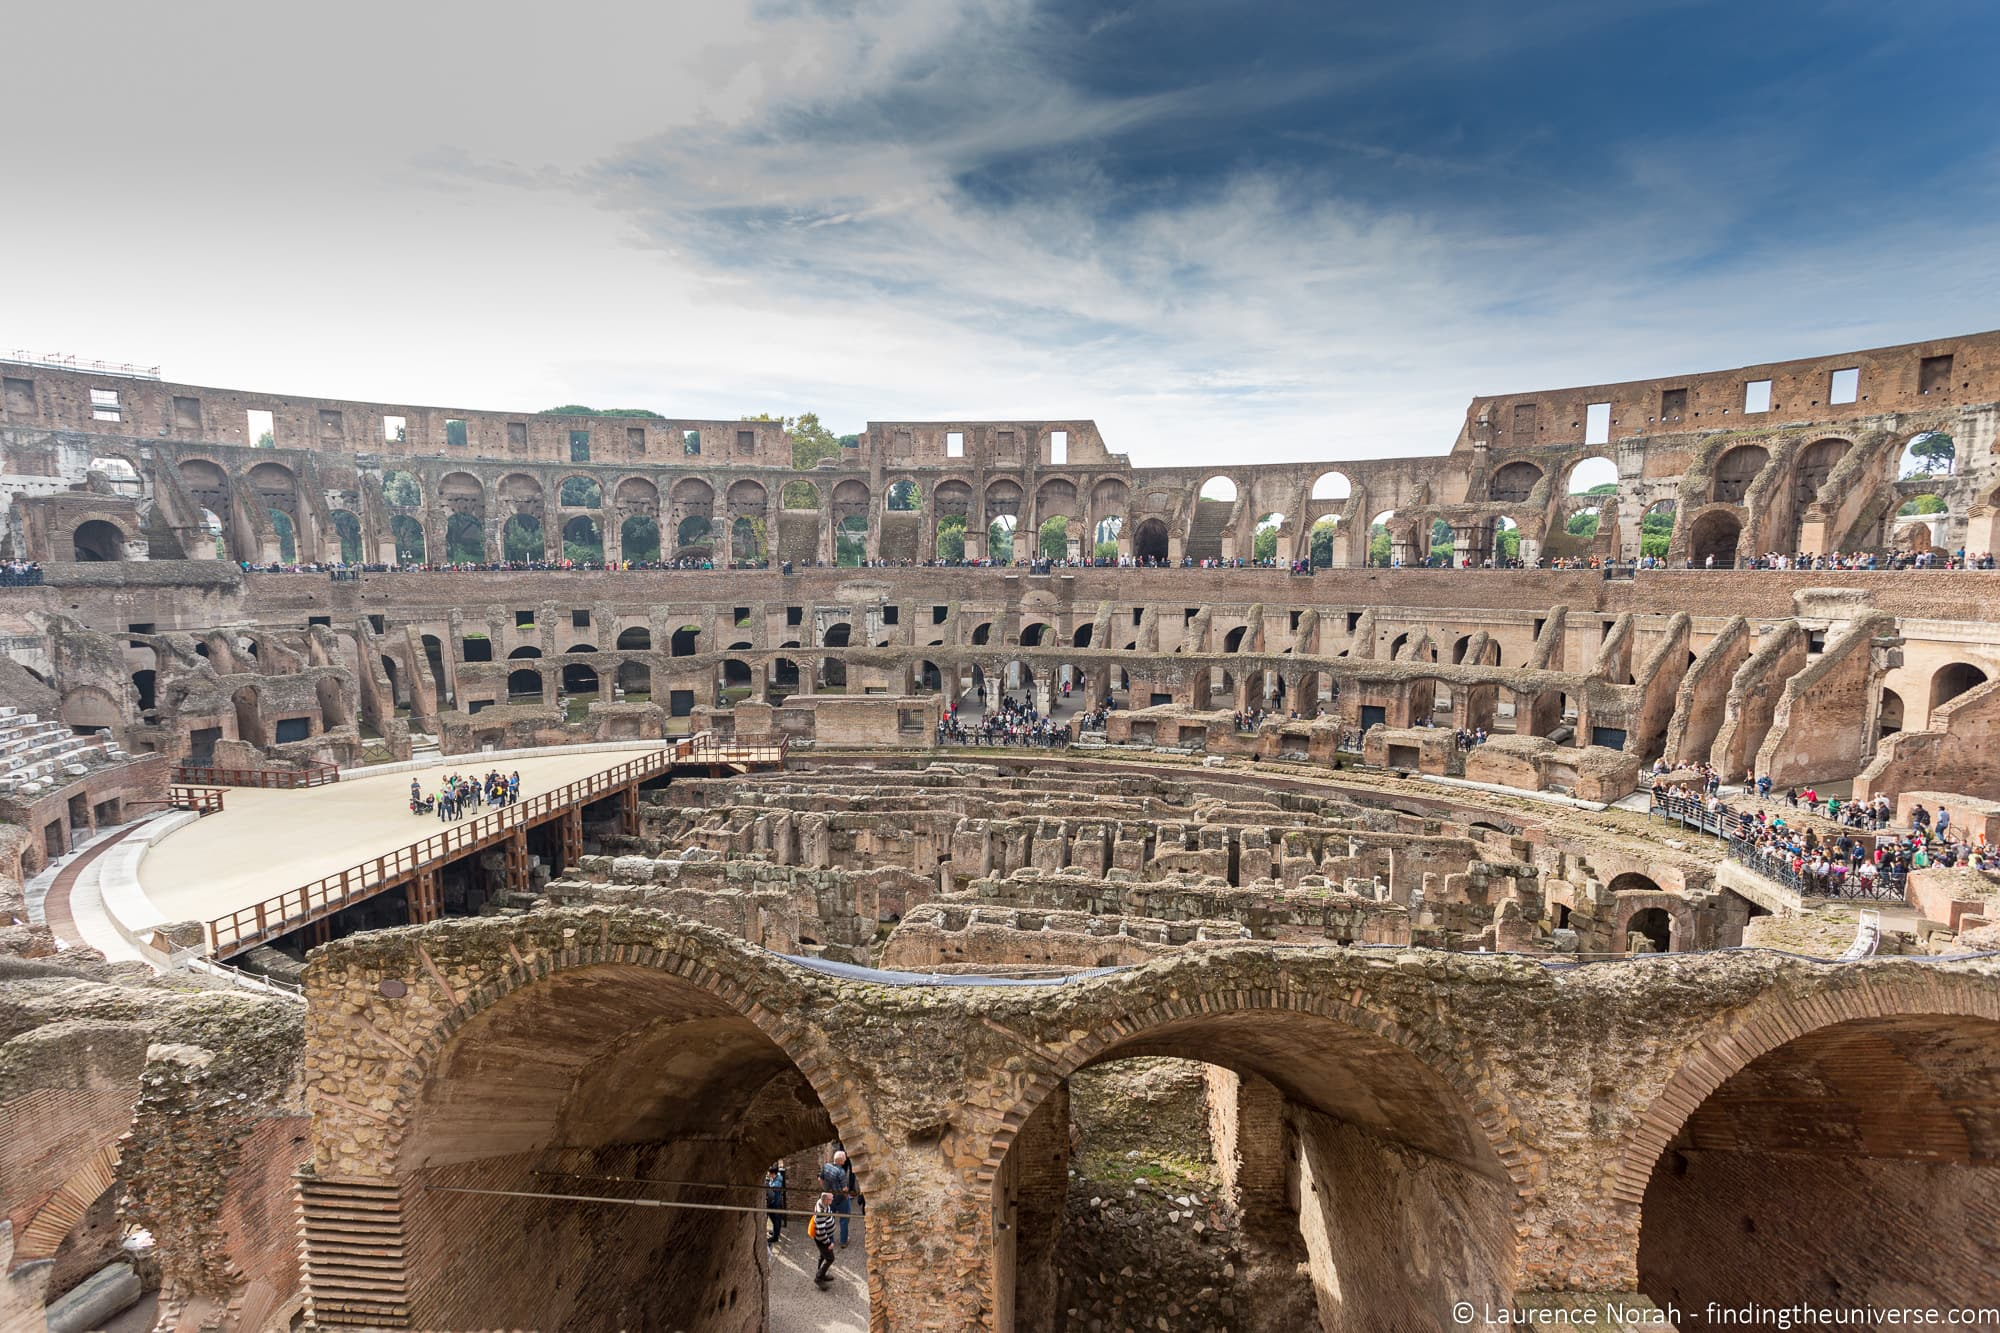 Visiting The Colosseum Rome In 2019: Everything You Need